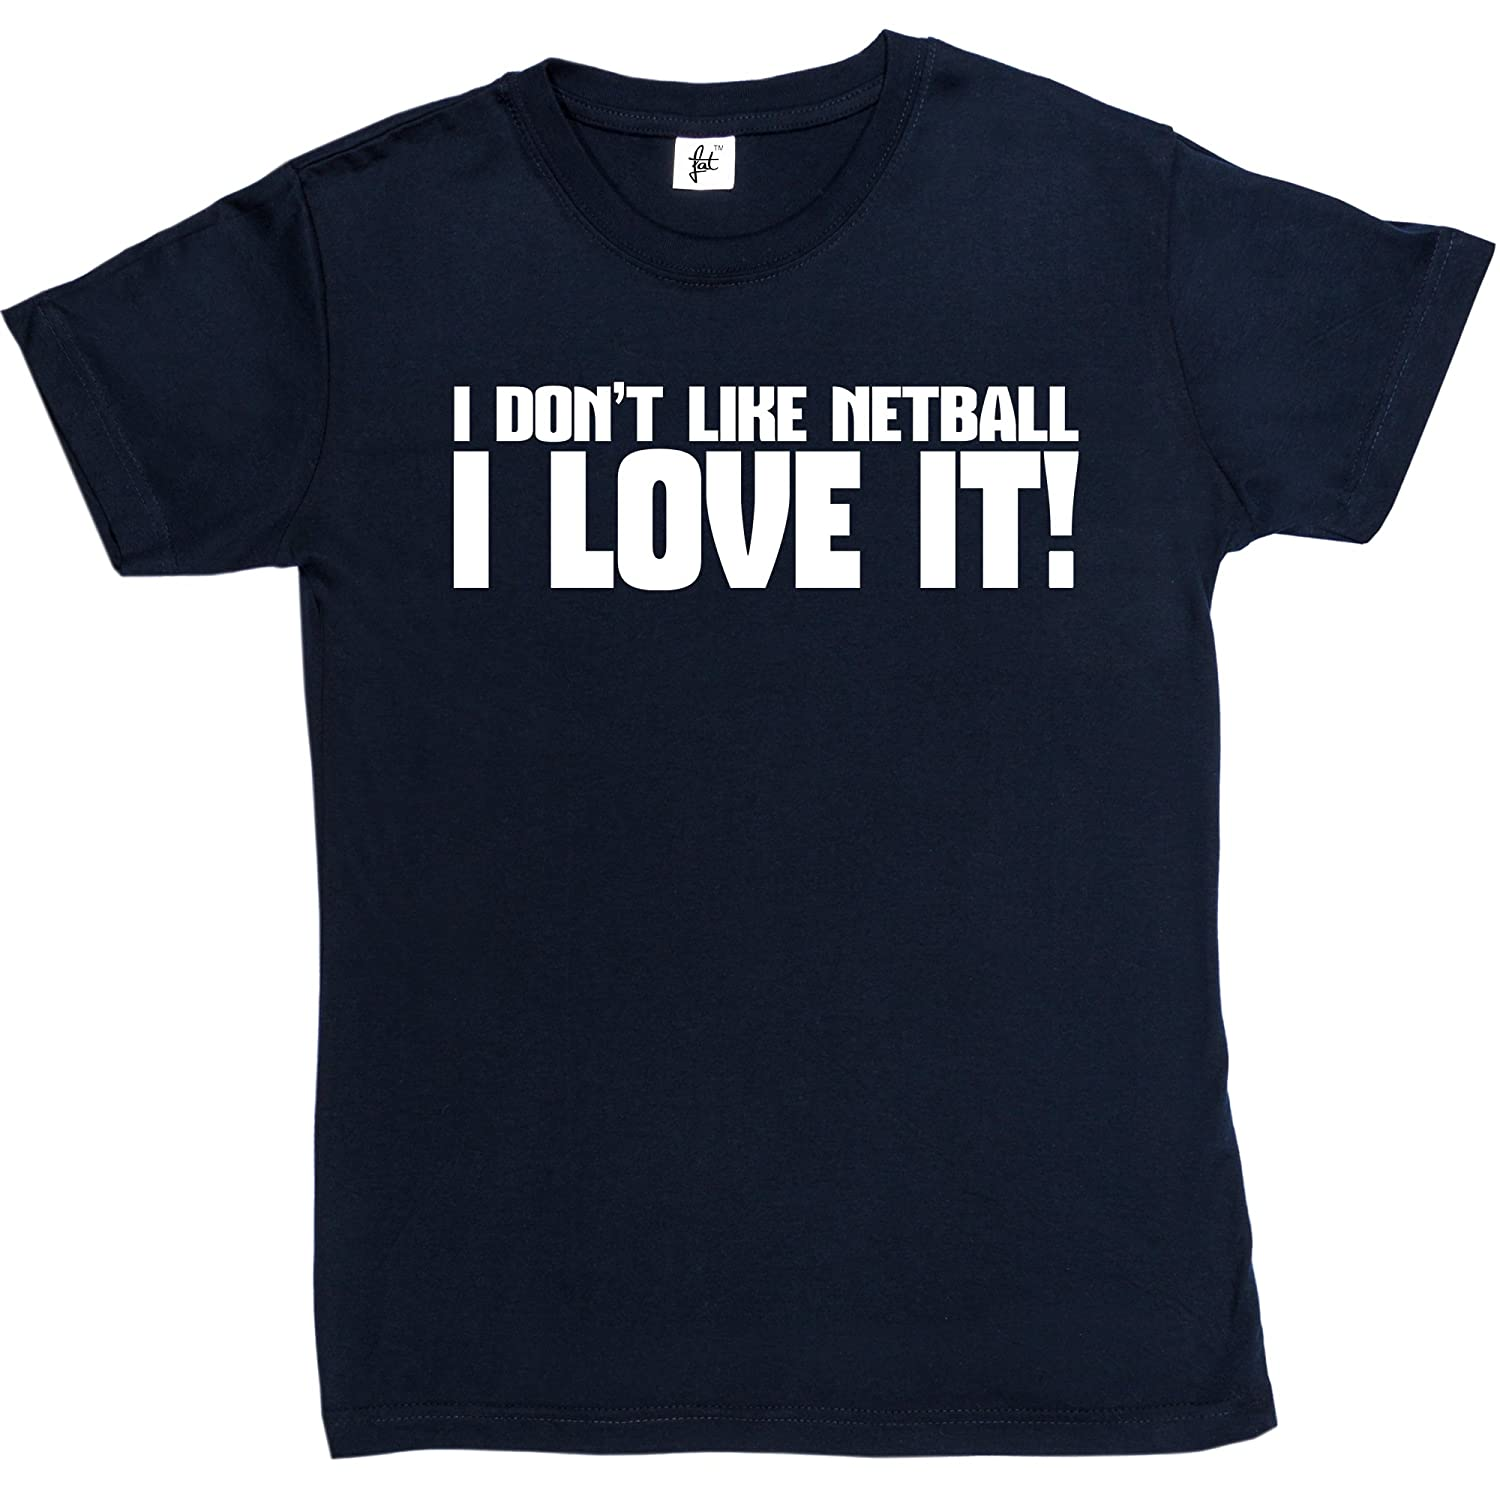 Design t shirt netball - I Don T Like Netball I Love It Womens Ladies Cotton Short Sleeve T Shirt Sizes Xs S M L Xl 2xl 8 10 12 14 16 18 Amazon Co Uk Clothing